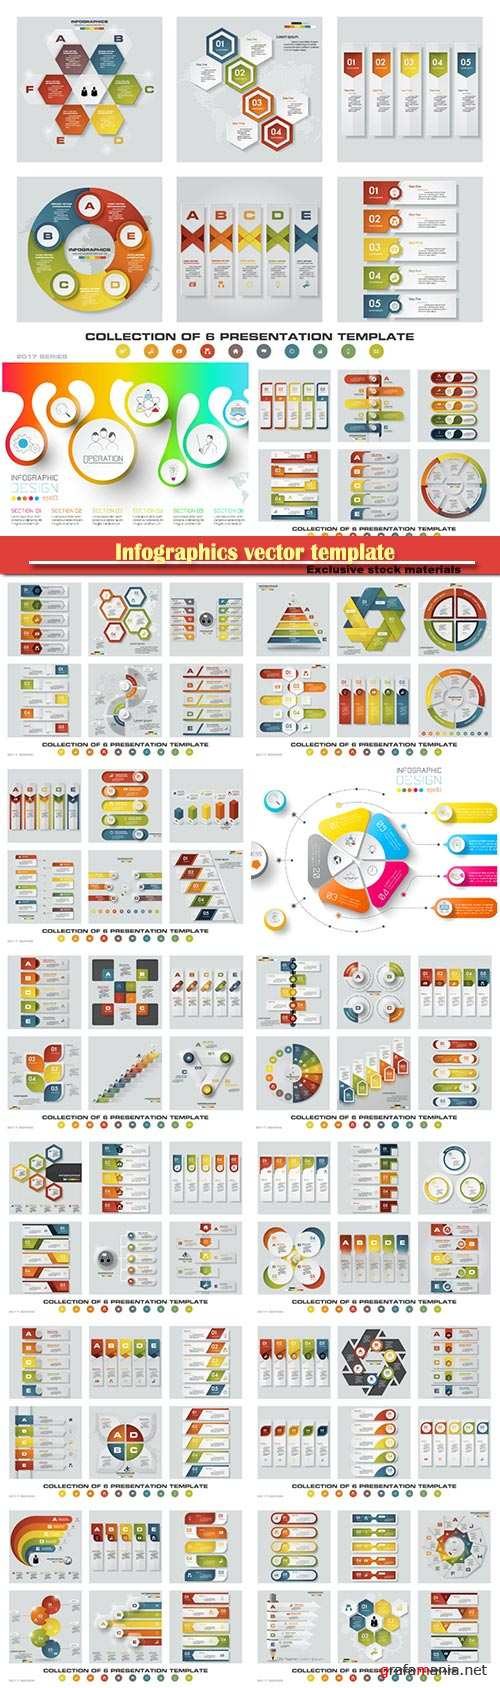 Infographics vector template for business presentations or information banner # 39